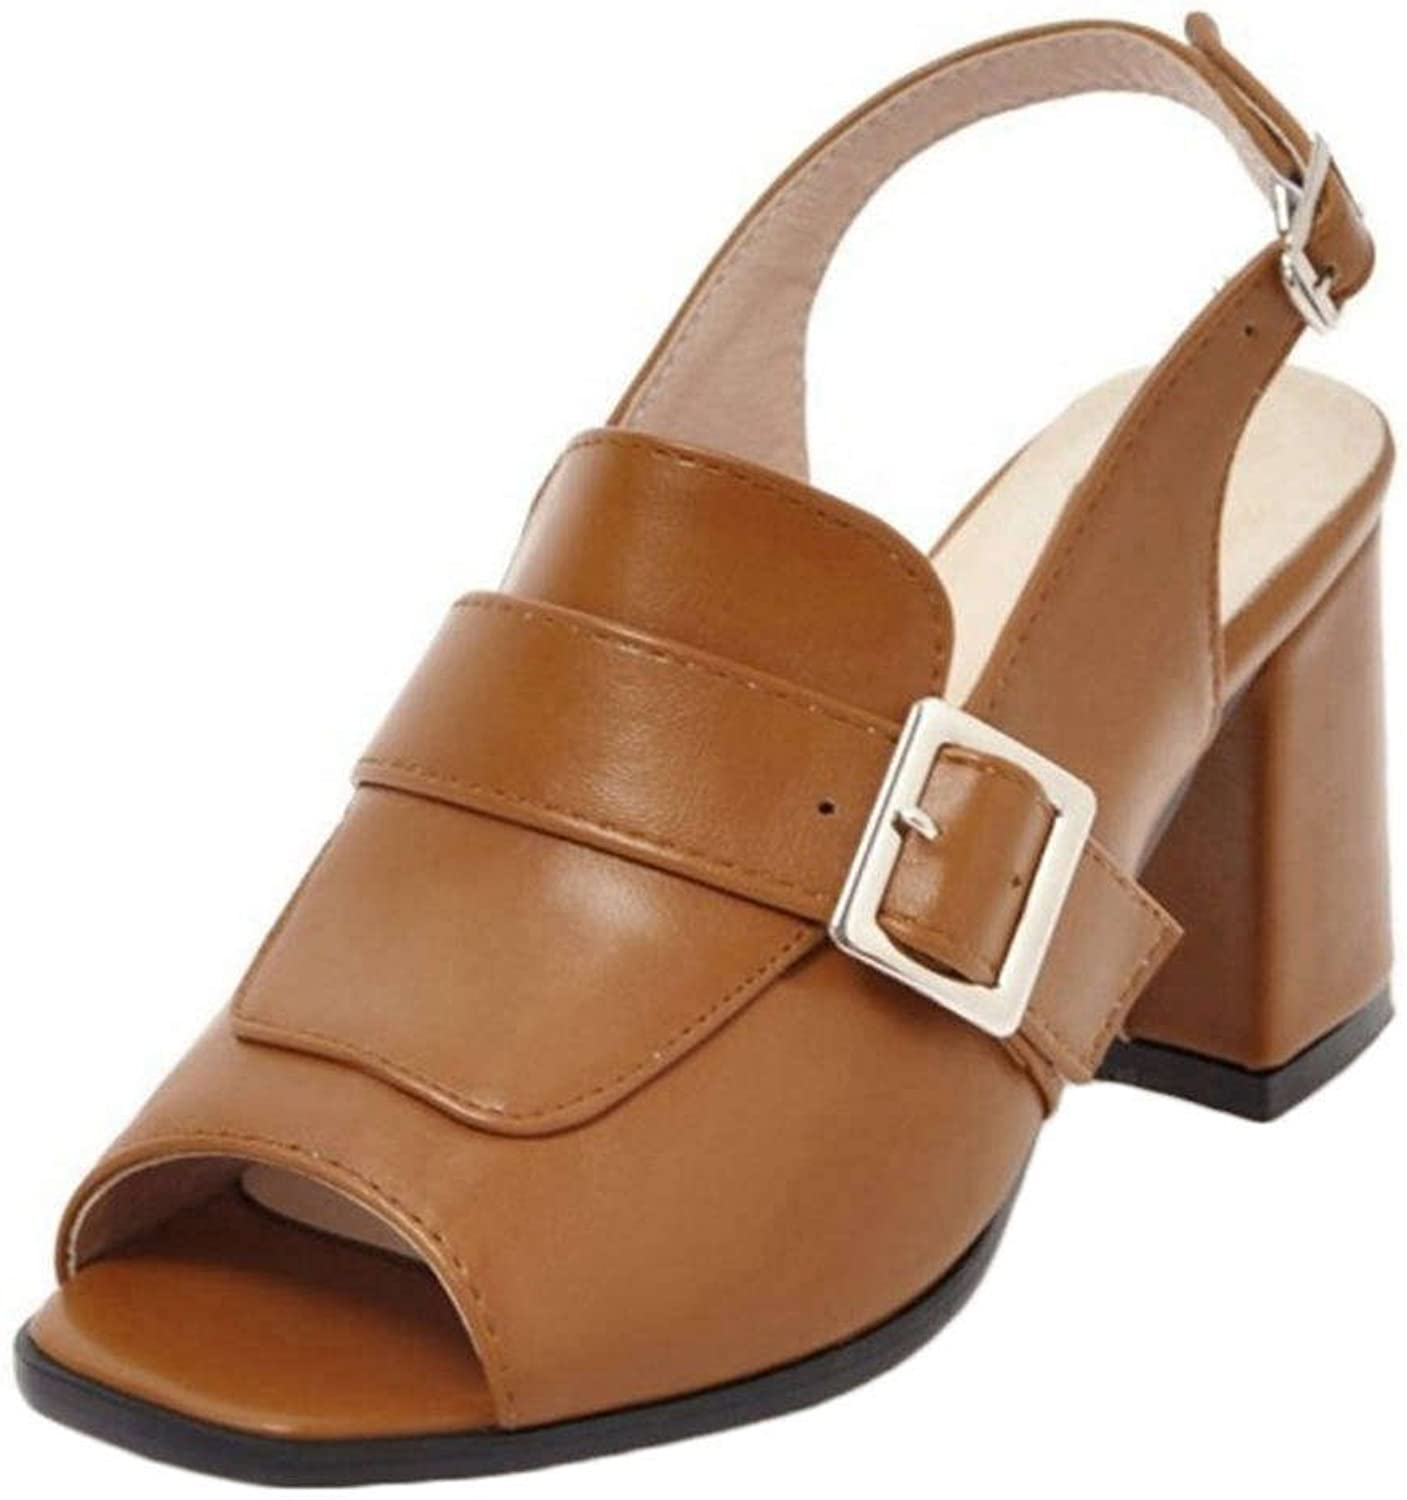 Smilice Casual Sandals with Chunky and Open Toe Fashion shoes with Plus Size Available